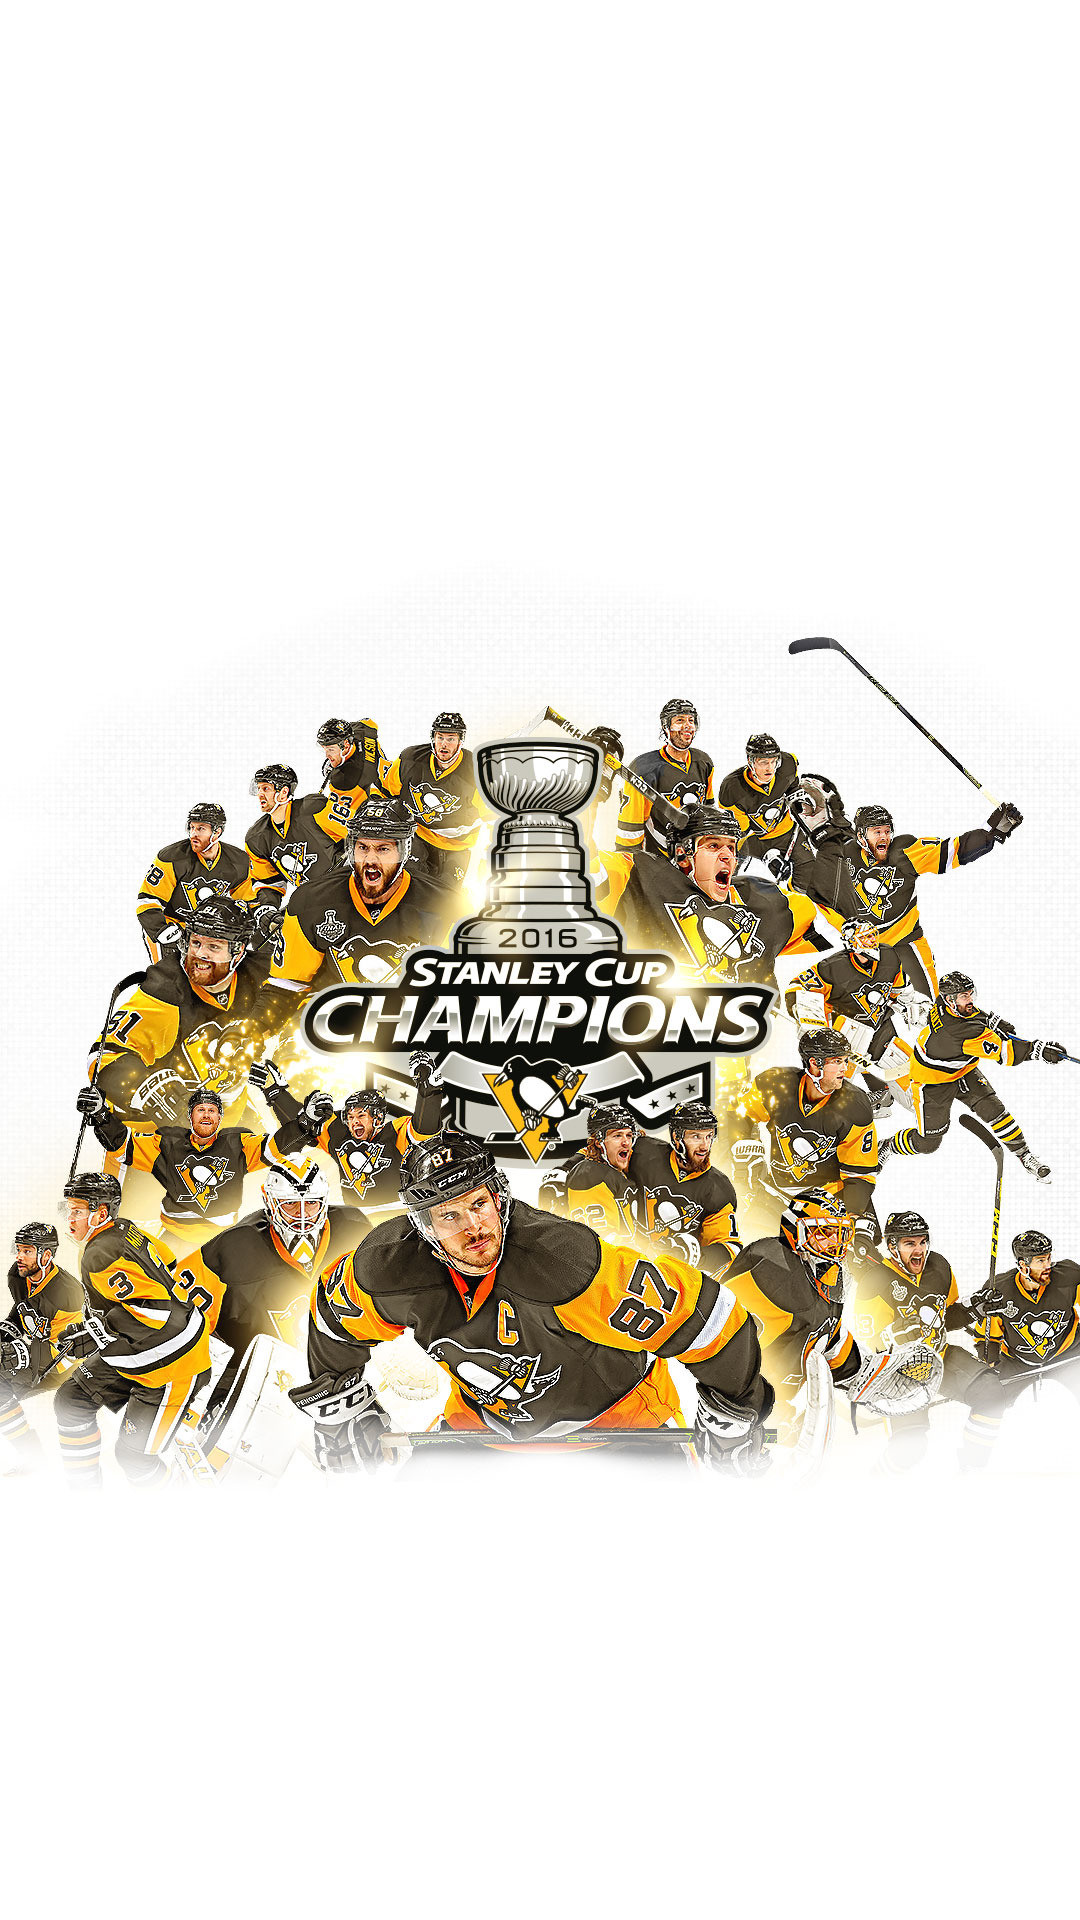 1080x1920 Wallpapers Pittsburgh Penguins | HD Wallpapers | Pinterest | Penguins and  Wallpaper